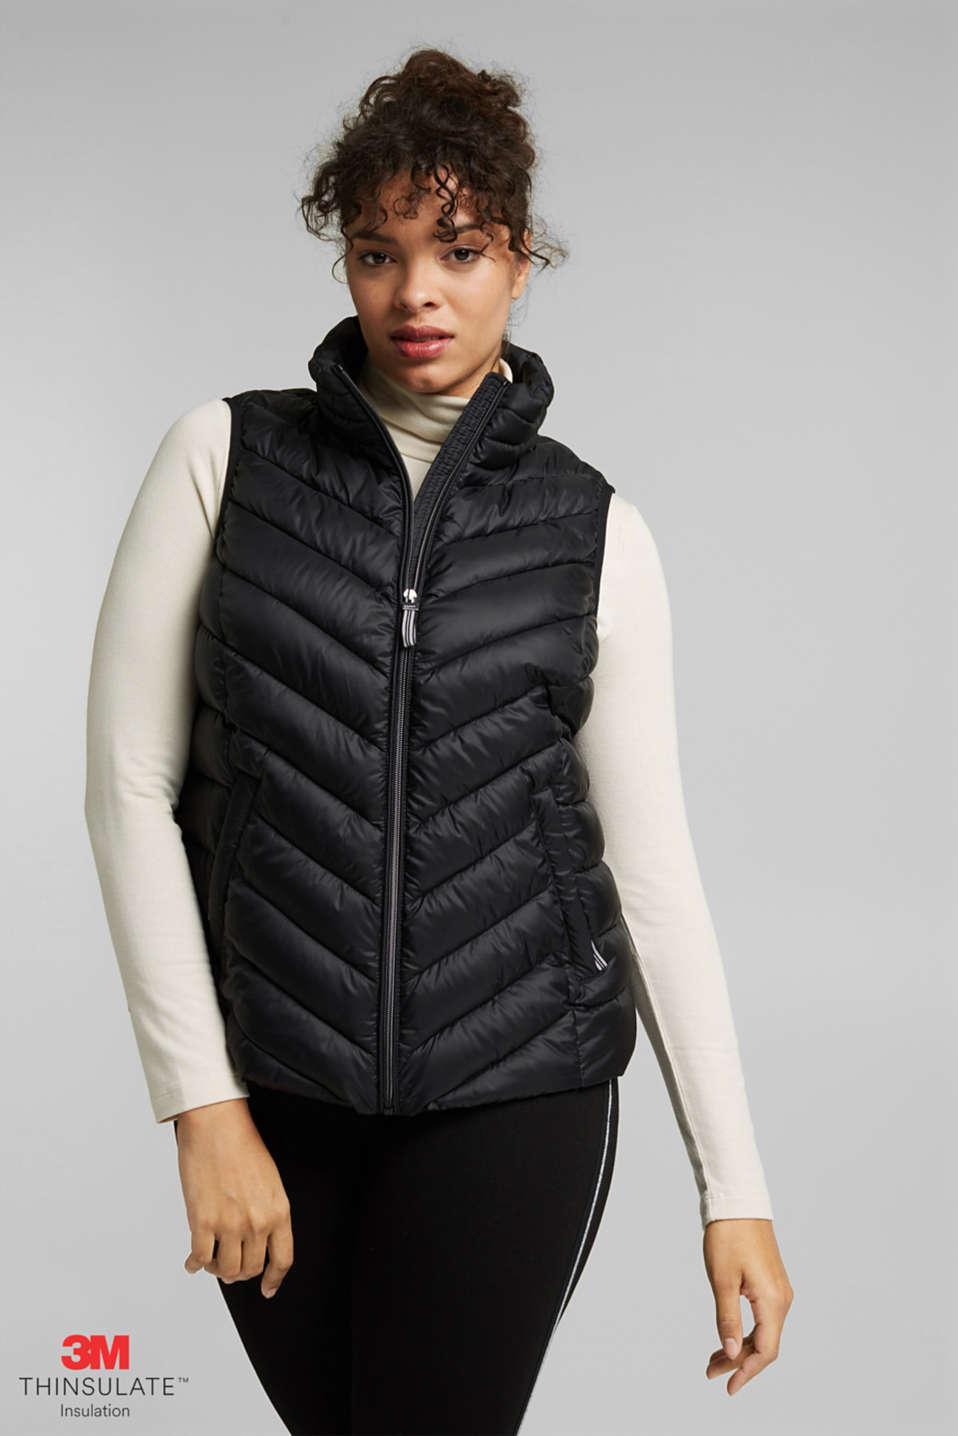 Esprit - Gilet CURVY au rembourrage 3M™ Thinsulate™